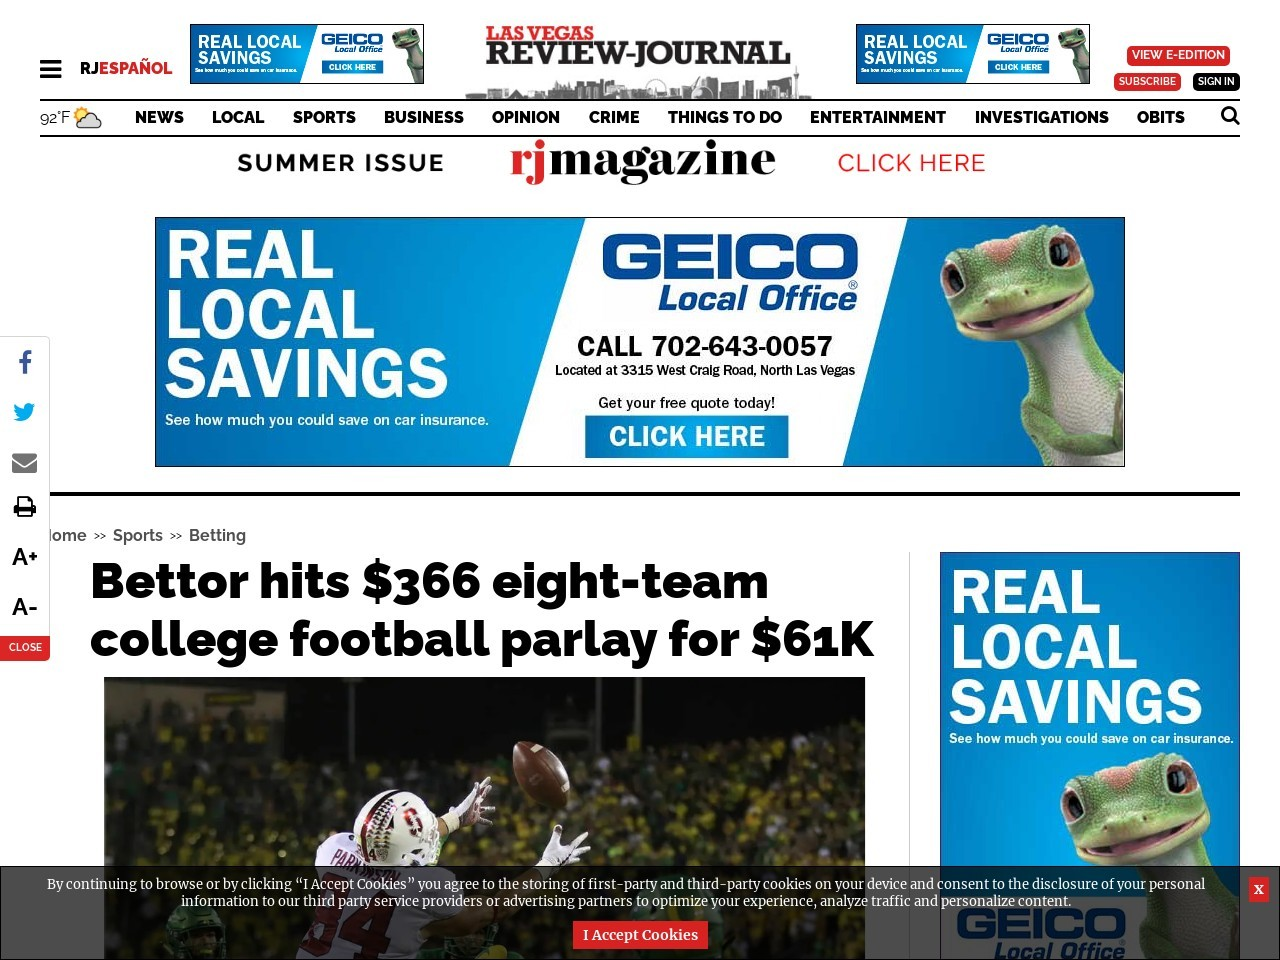 Bettor hits $366 eight-team college football parlay for $61K